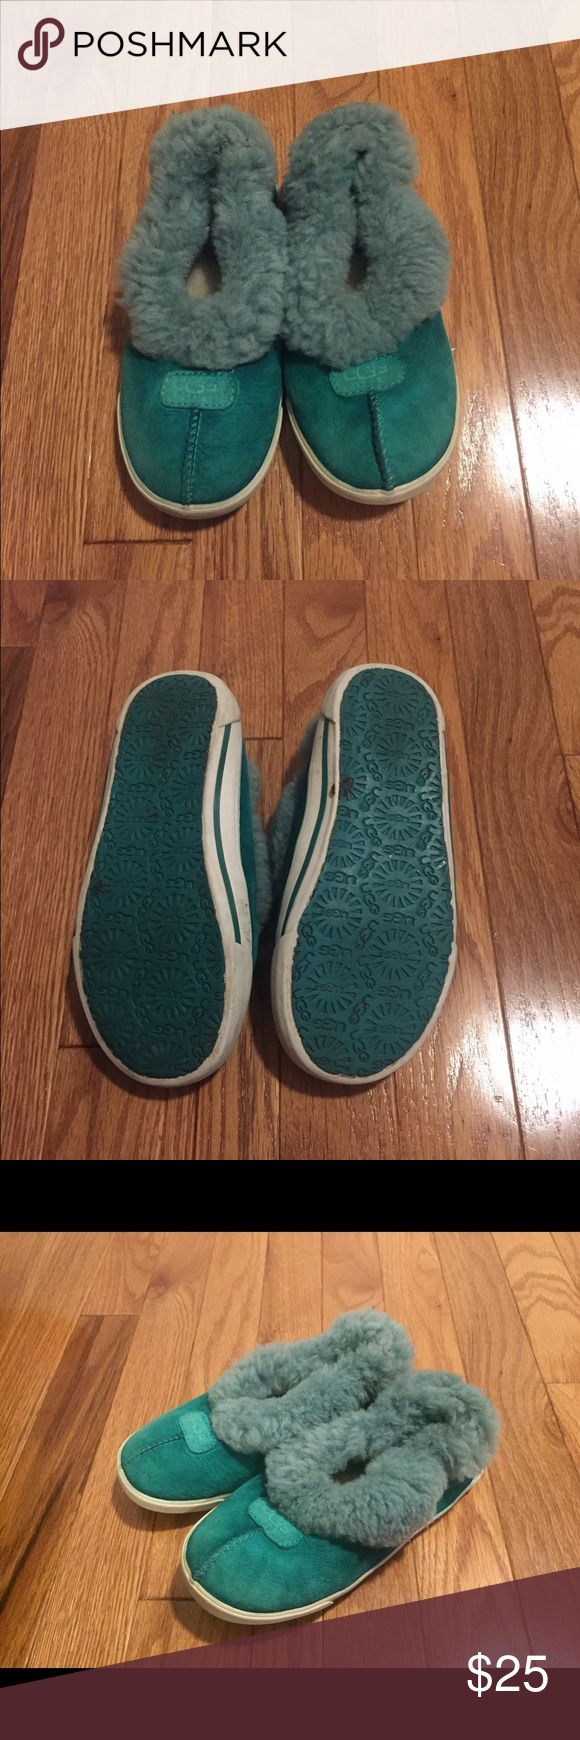 Ugg Shoes Size 1 Ugg Shoes Size 1 Great condition  All my items come from a smoke and pet free home  Thanks for looking and please feel free to contact me with any questions you might have UGG Shoes Boots